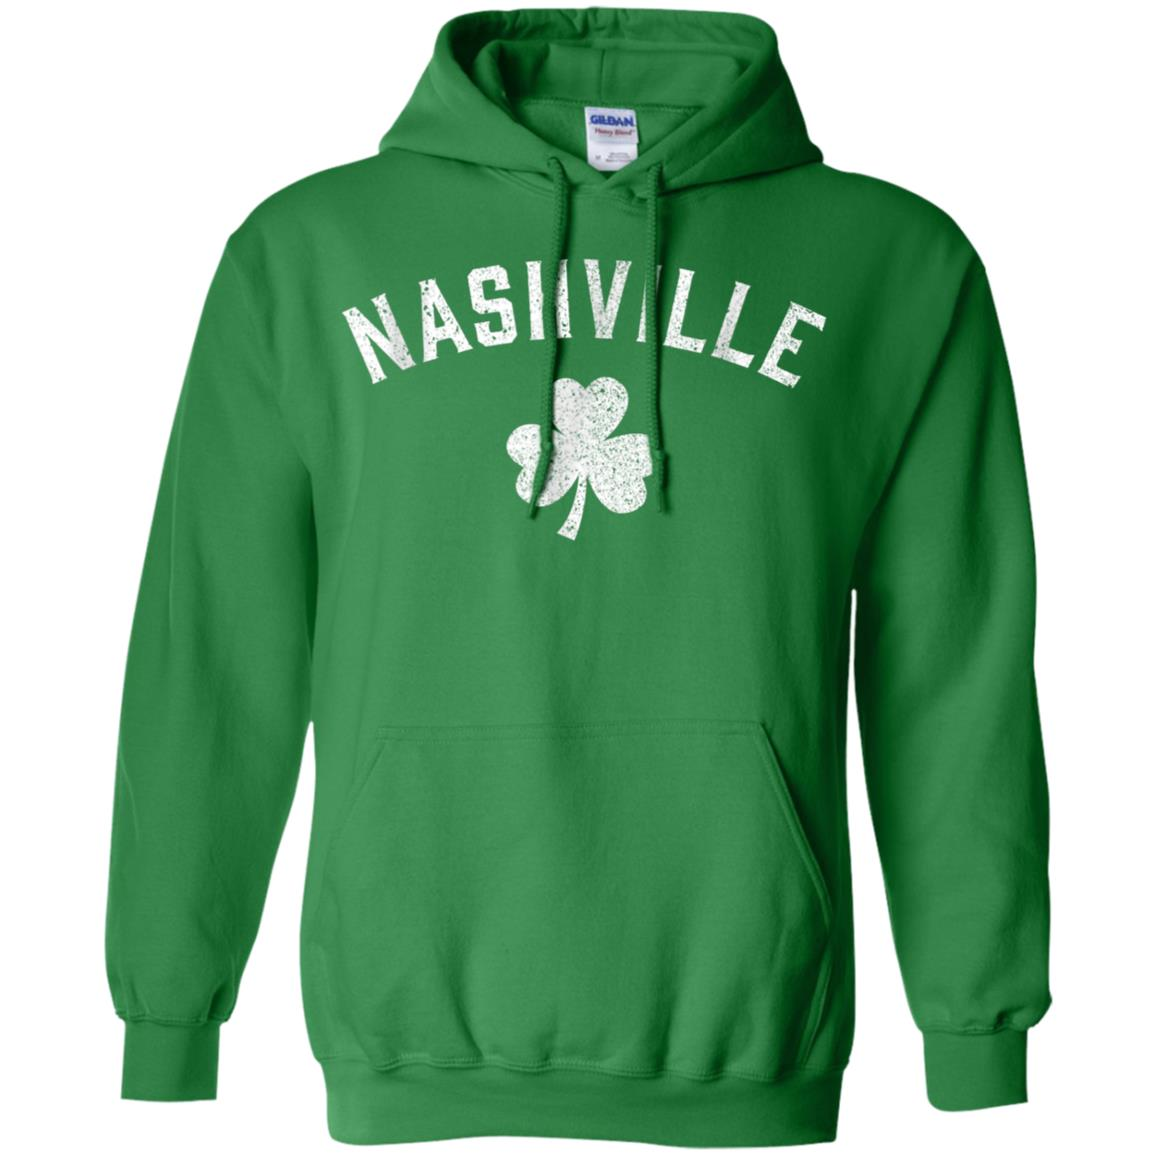 Nashville, St Patrick's Day shirt - Patty's day Shamrock T 99promocode